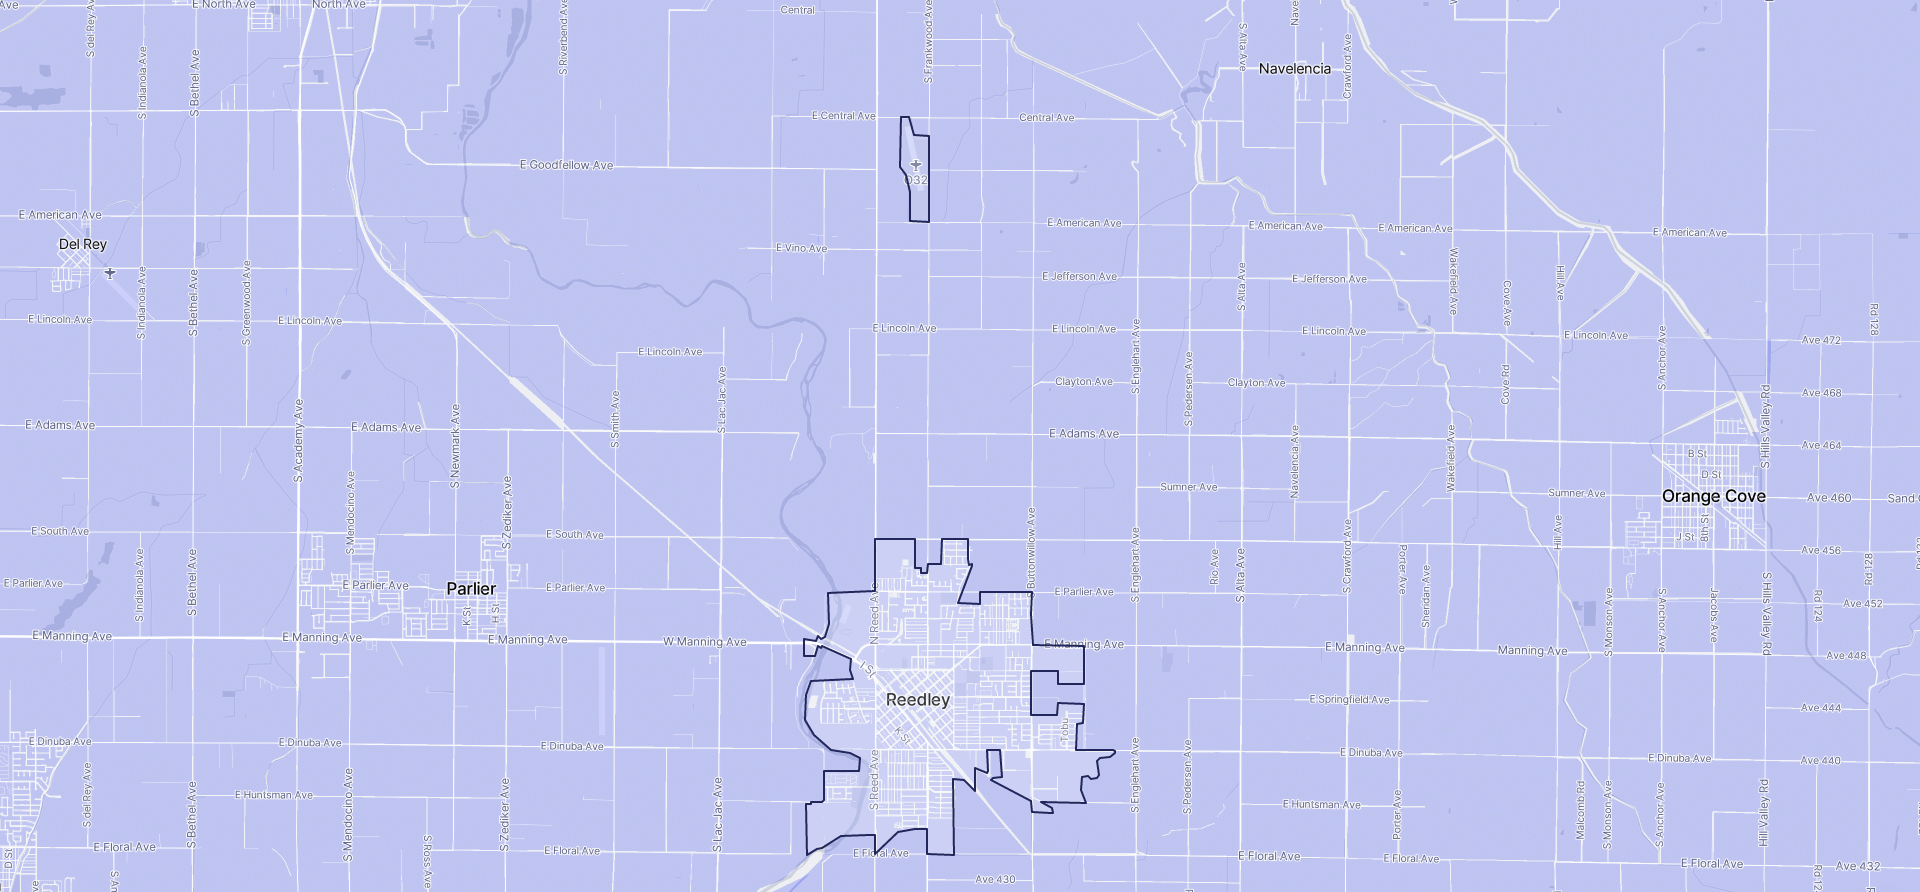 Image of Reedley boundaries on a map.